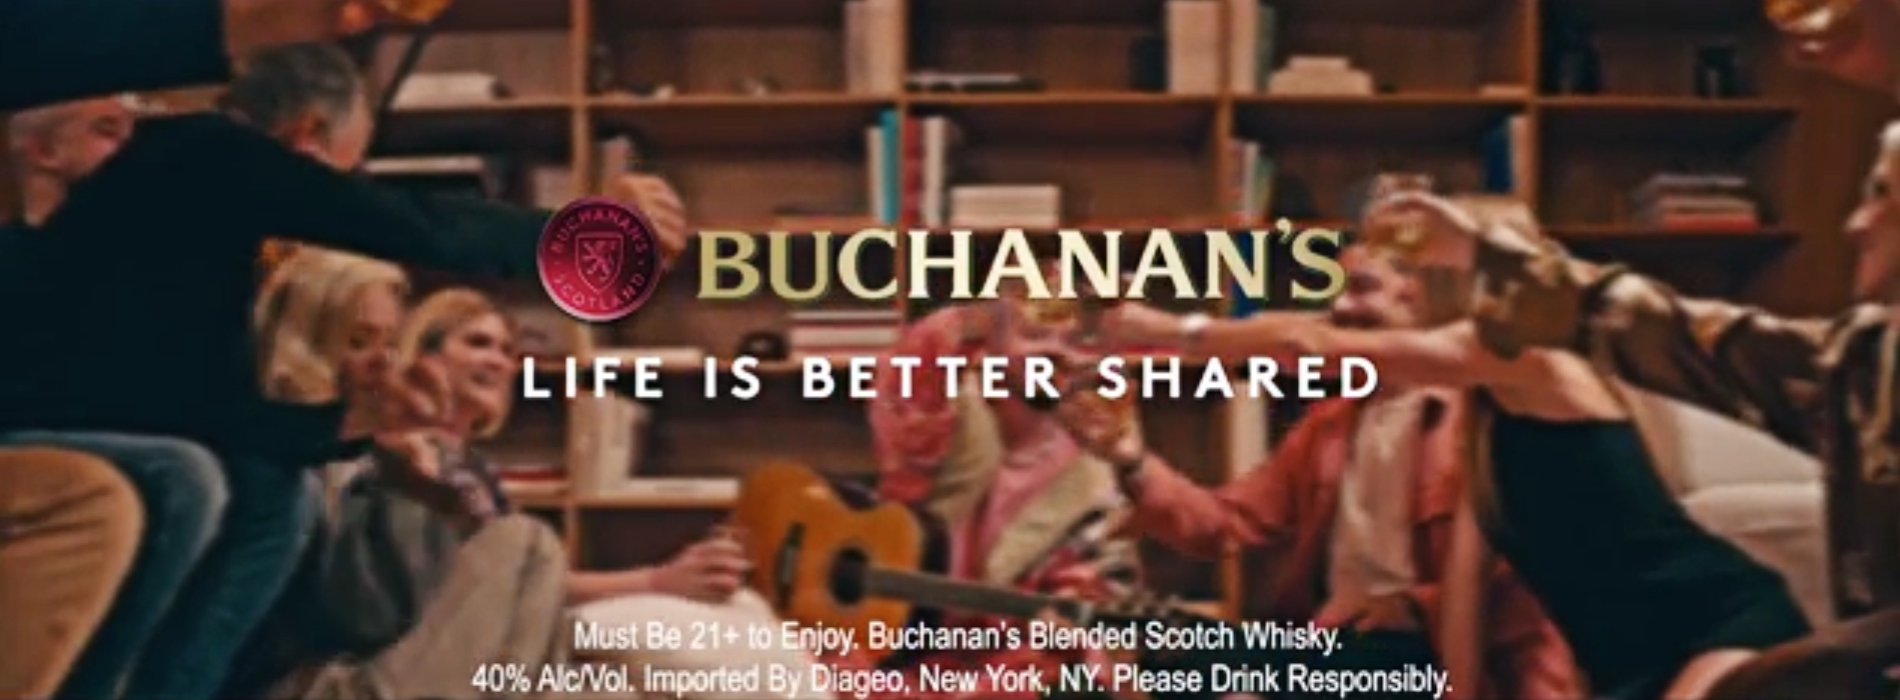 Buchanan's Blended Scotch Whisky Introduces New 'Life Is Better Shared' Campaign, To Uplift Communities In Need This Holiday Season